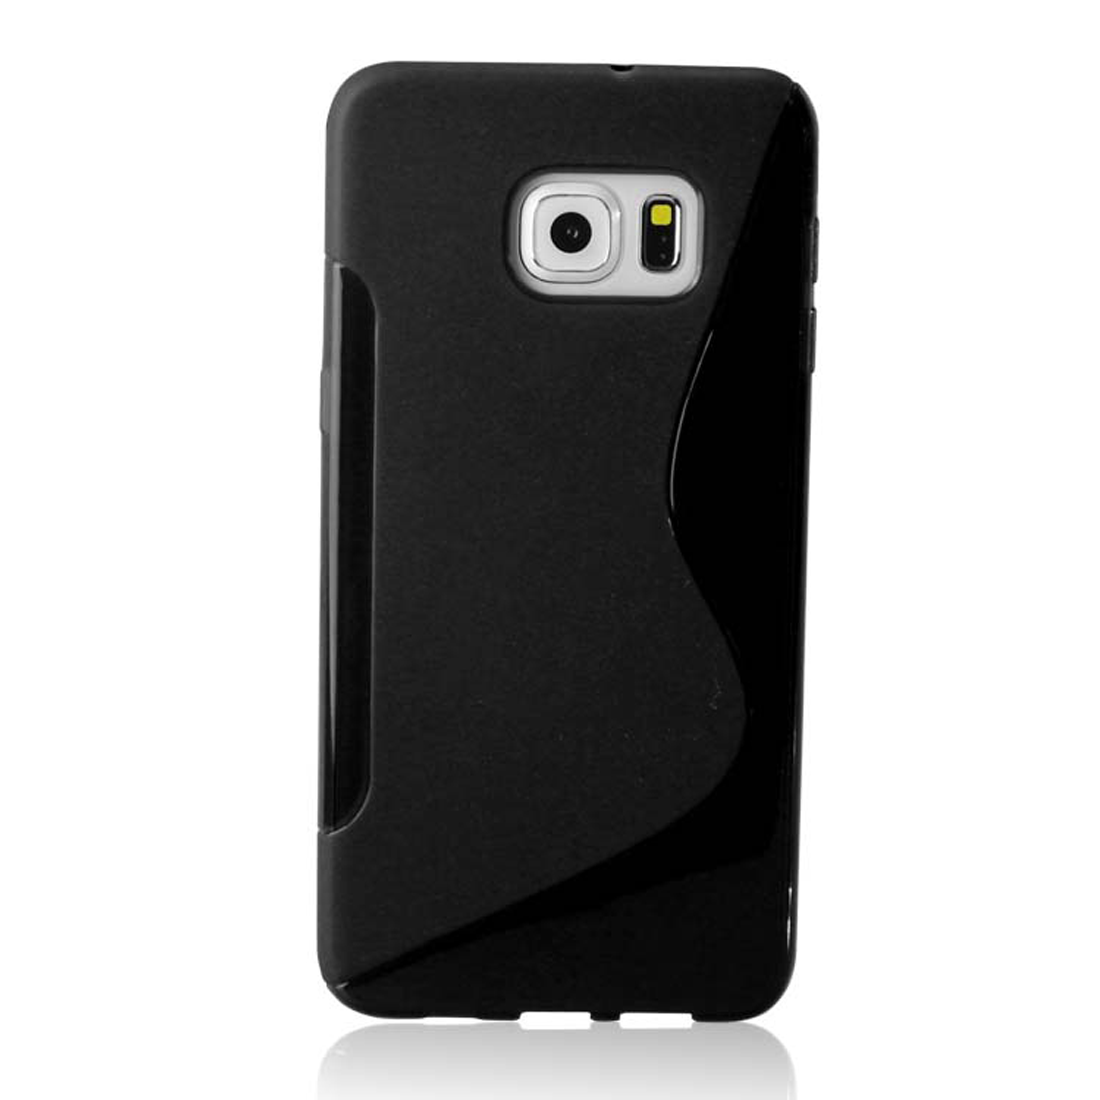 handy h lle f samsung galaxy s6 edge plus tasche silikon schutzh lle case cover f r samsung f r. Black Bedroom Furniture Sets. Home Design Ideas